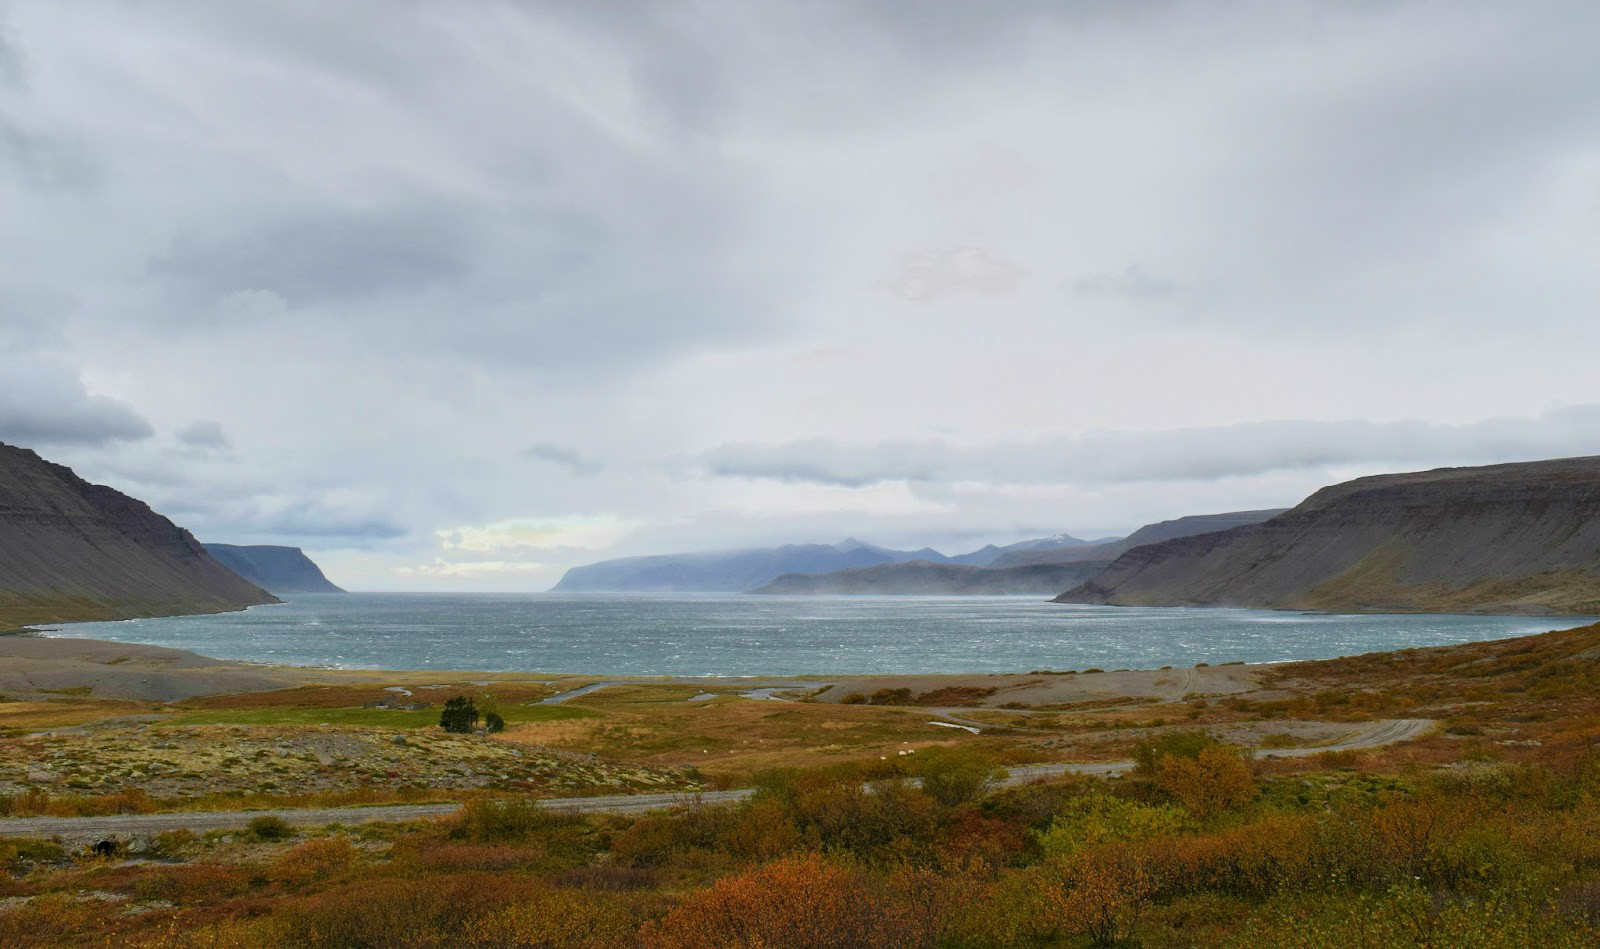 Some scenery from the Westfjords on our way to Bíldudalur